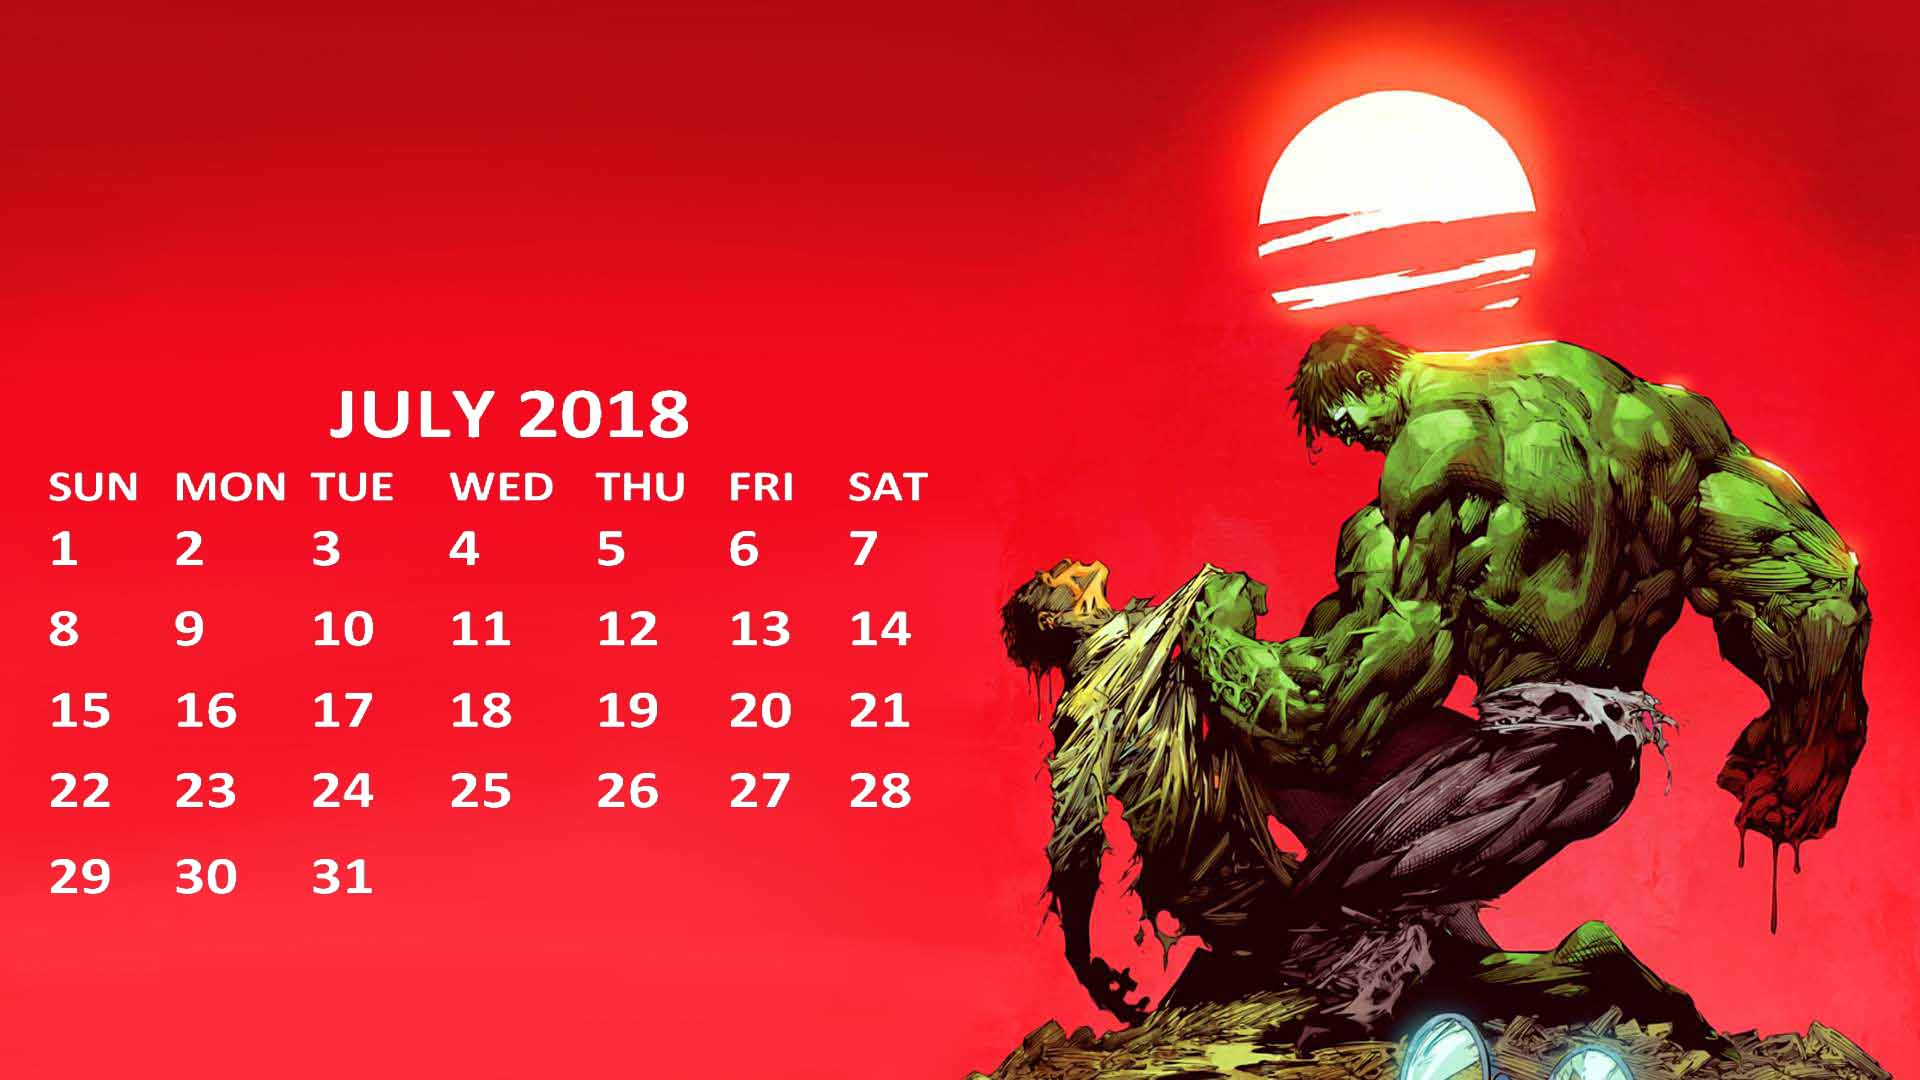 Hulk July 2018 Desktop Wallpaper